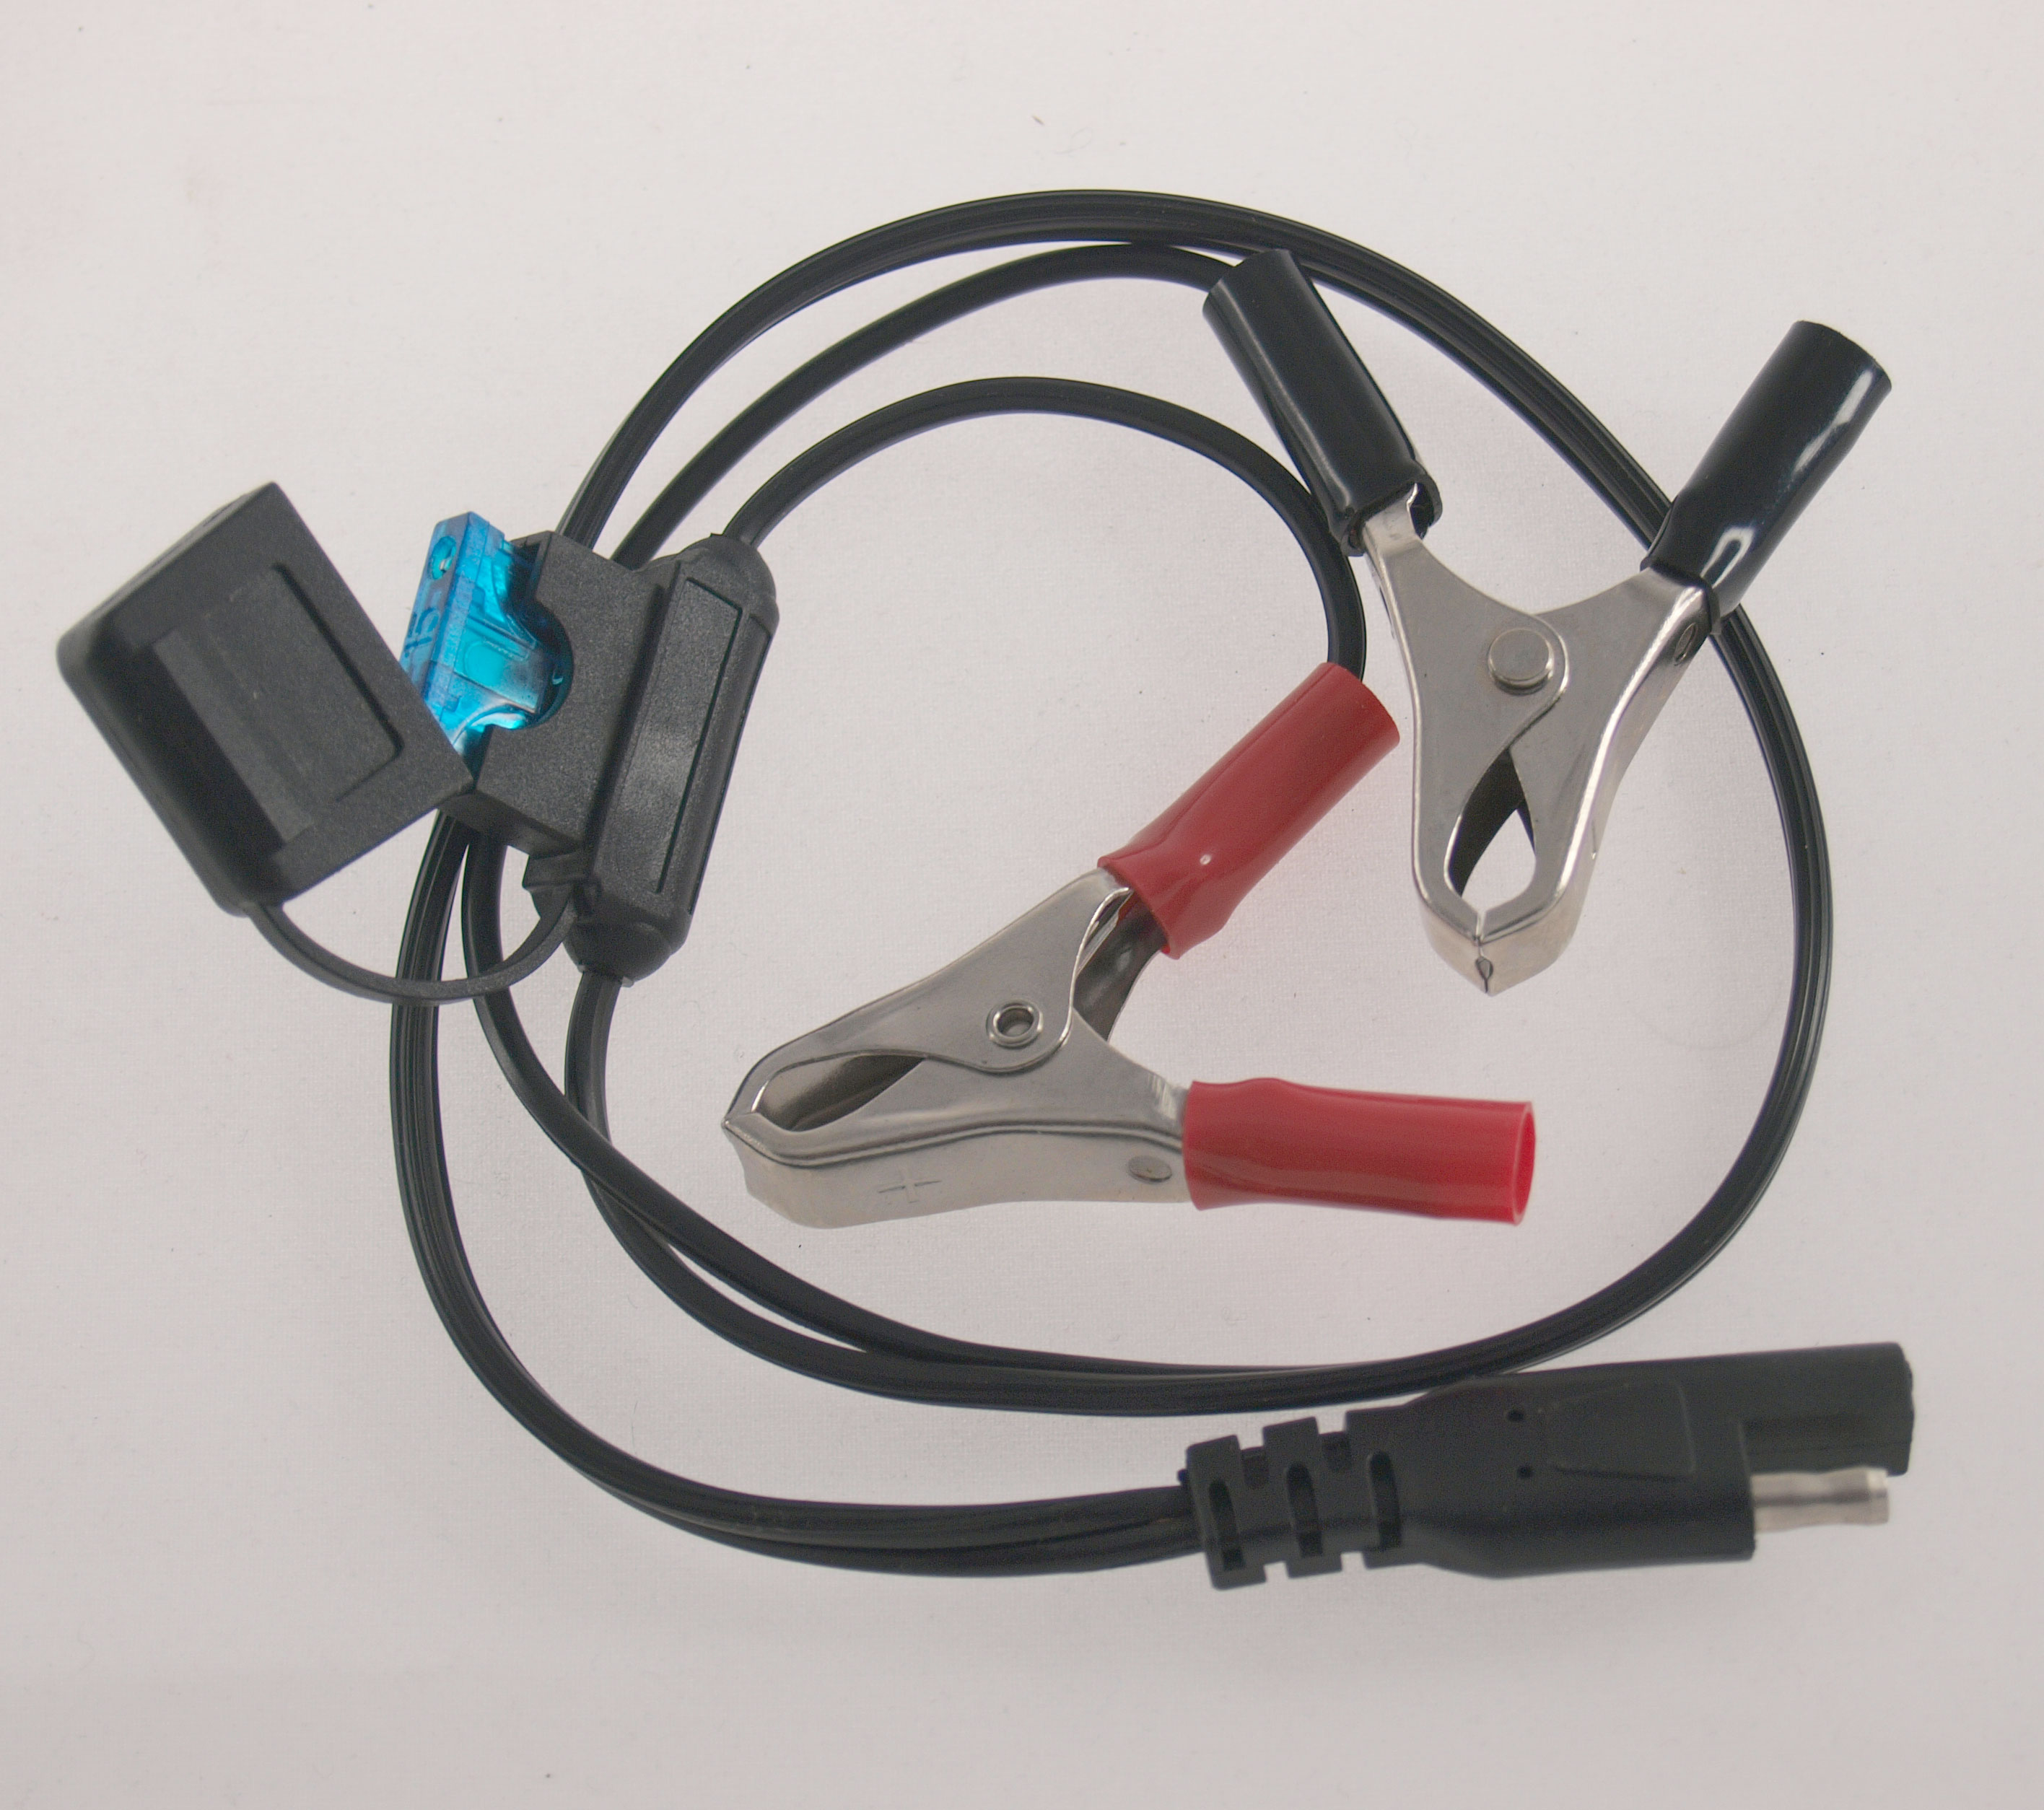 Crocodile clips to SAE plug lead for DYNAPLUG Mini Pro Inflator